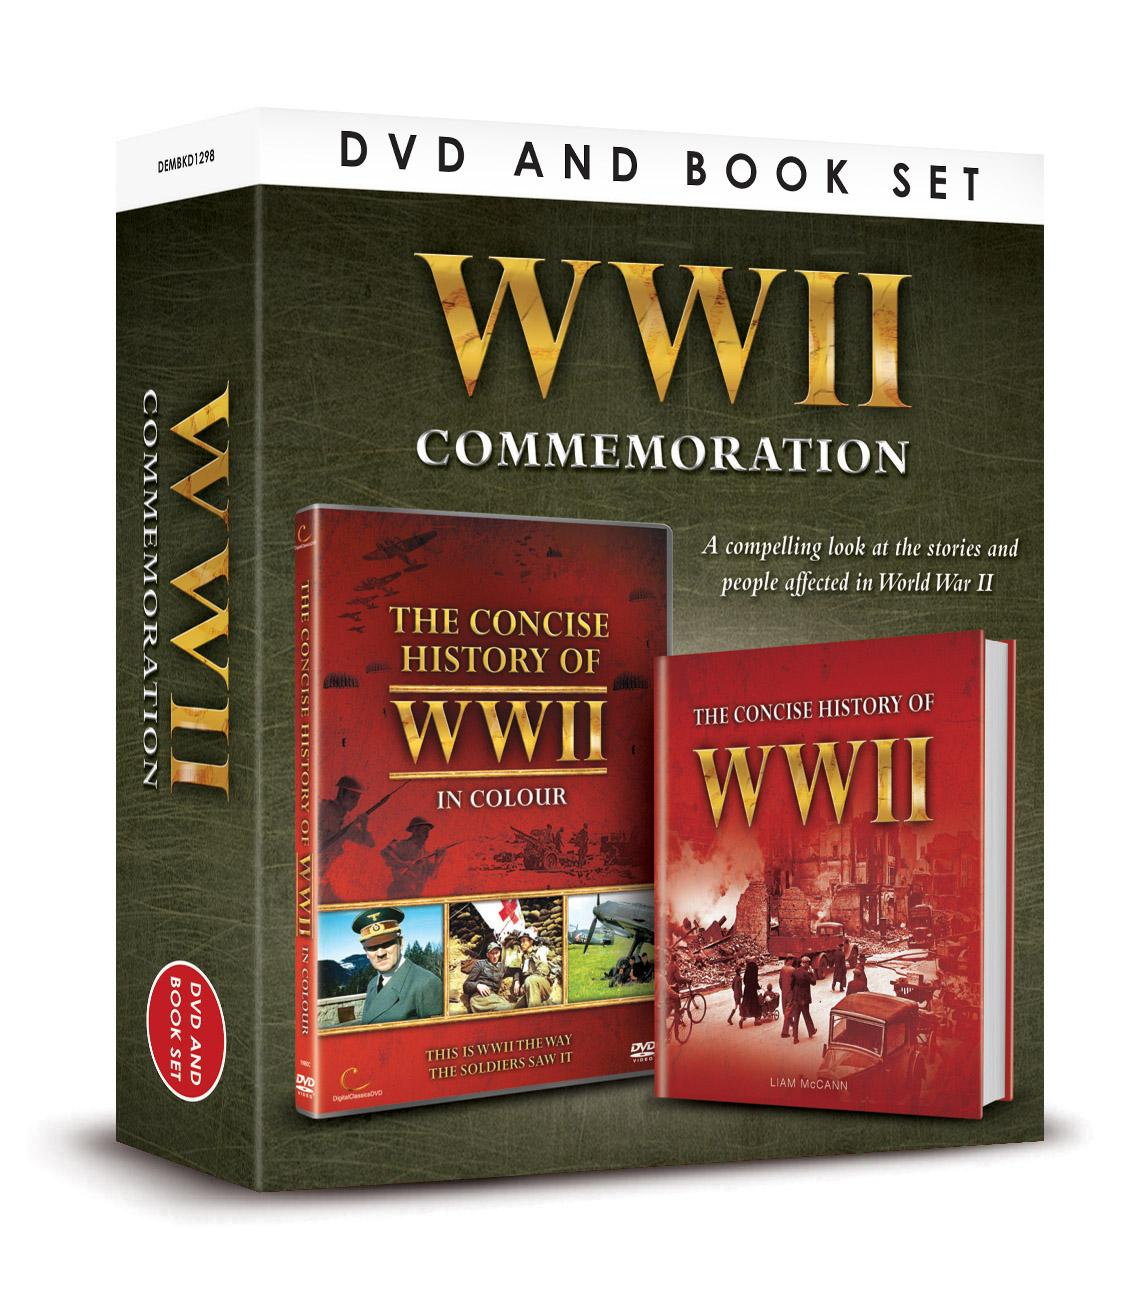 WWII Commemoration DVD and Book Set,wwii, world war 2